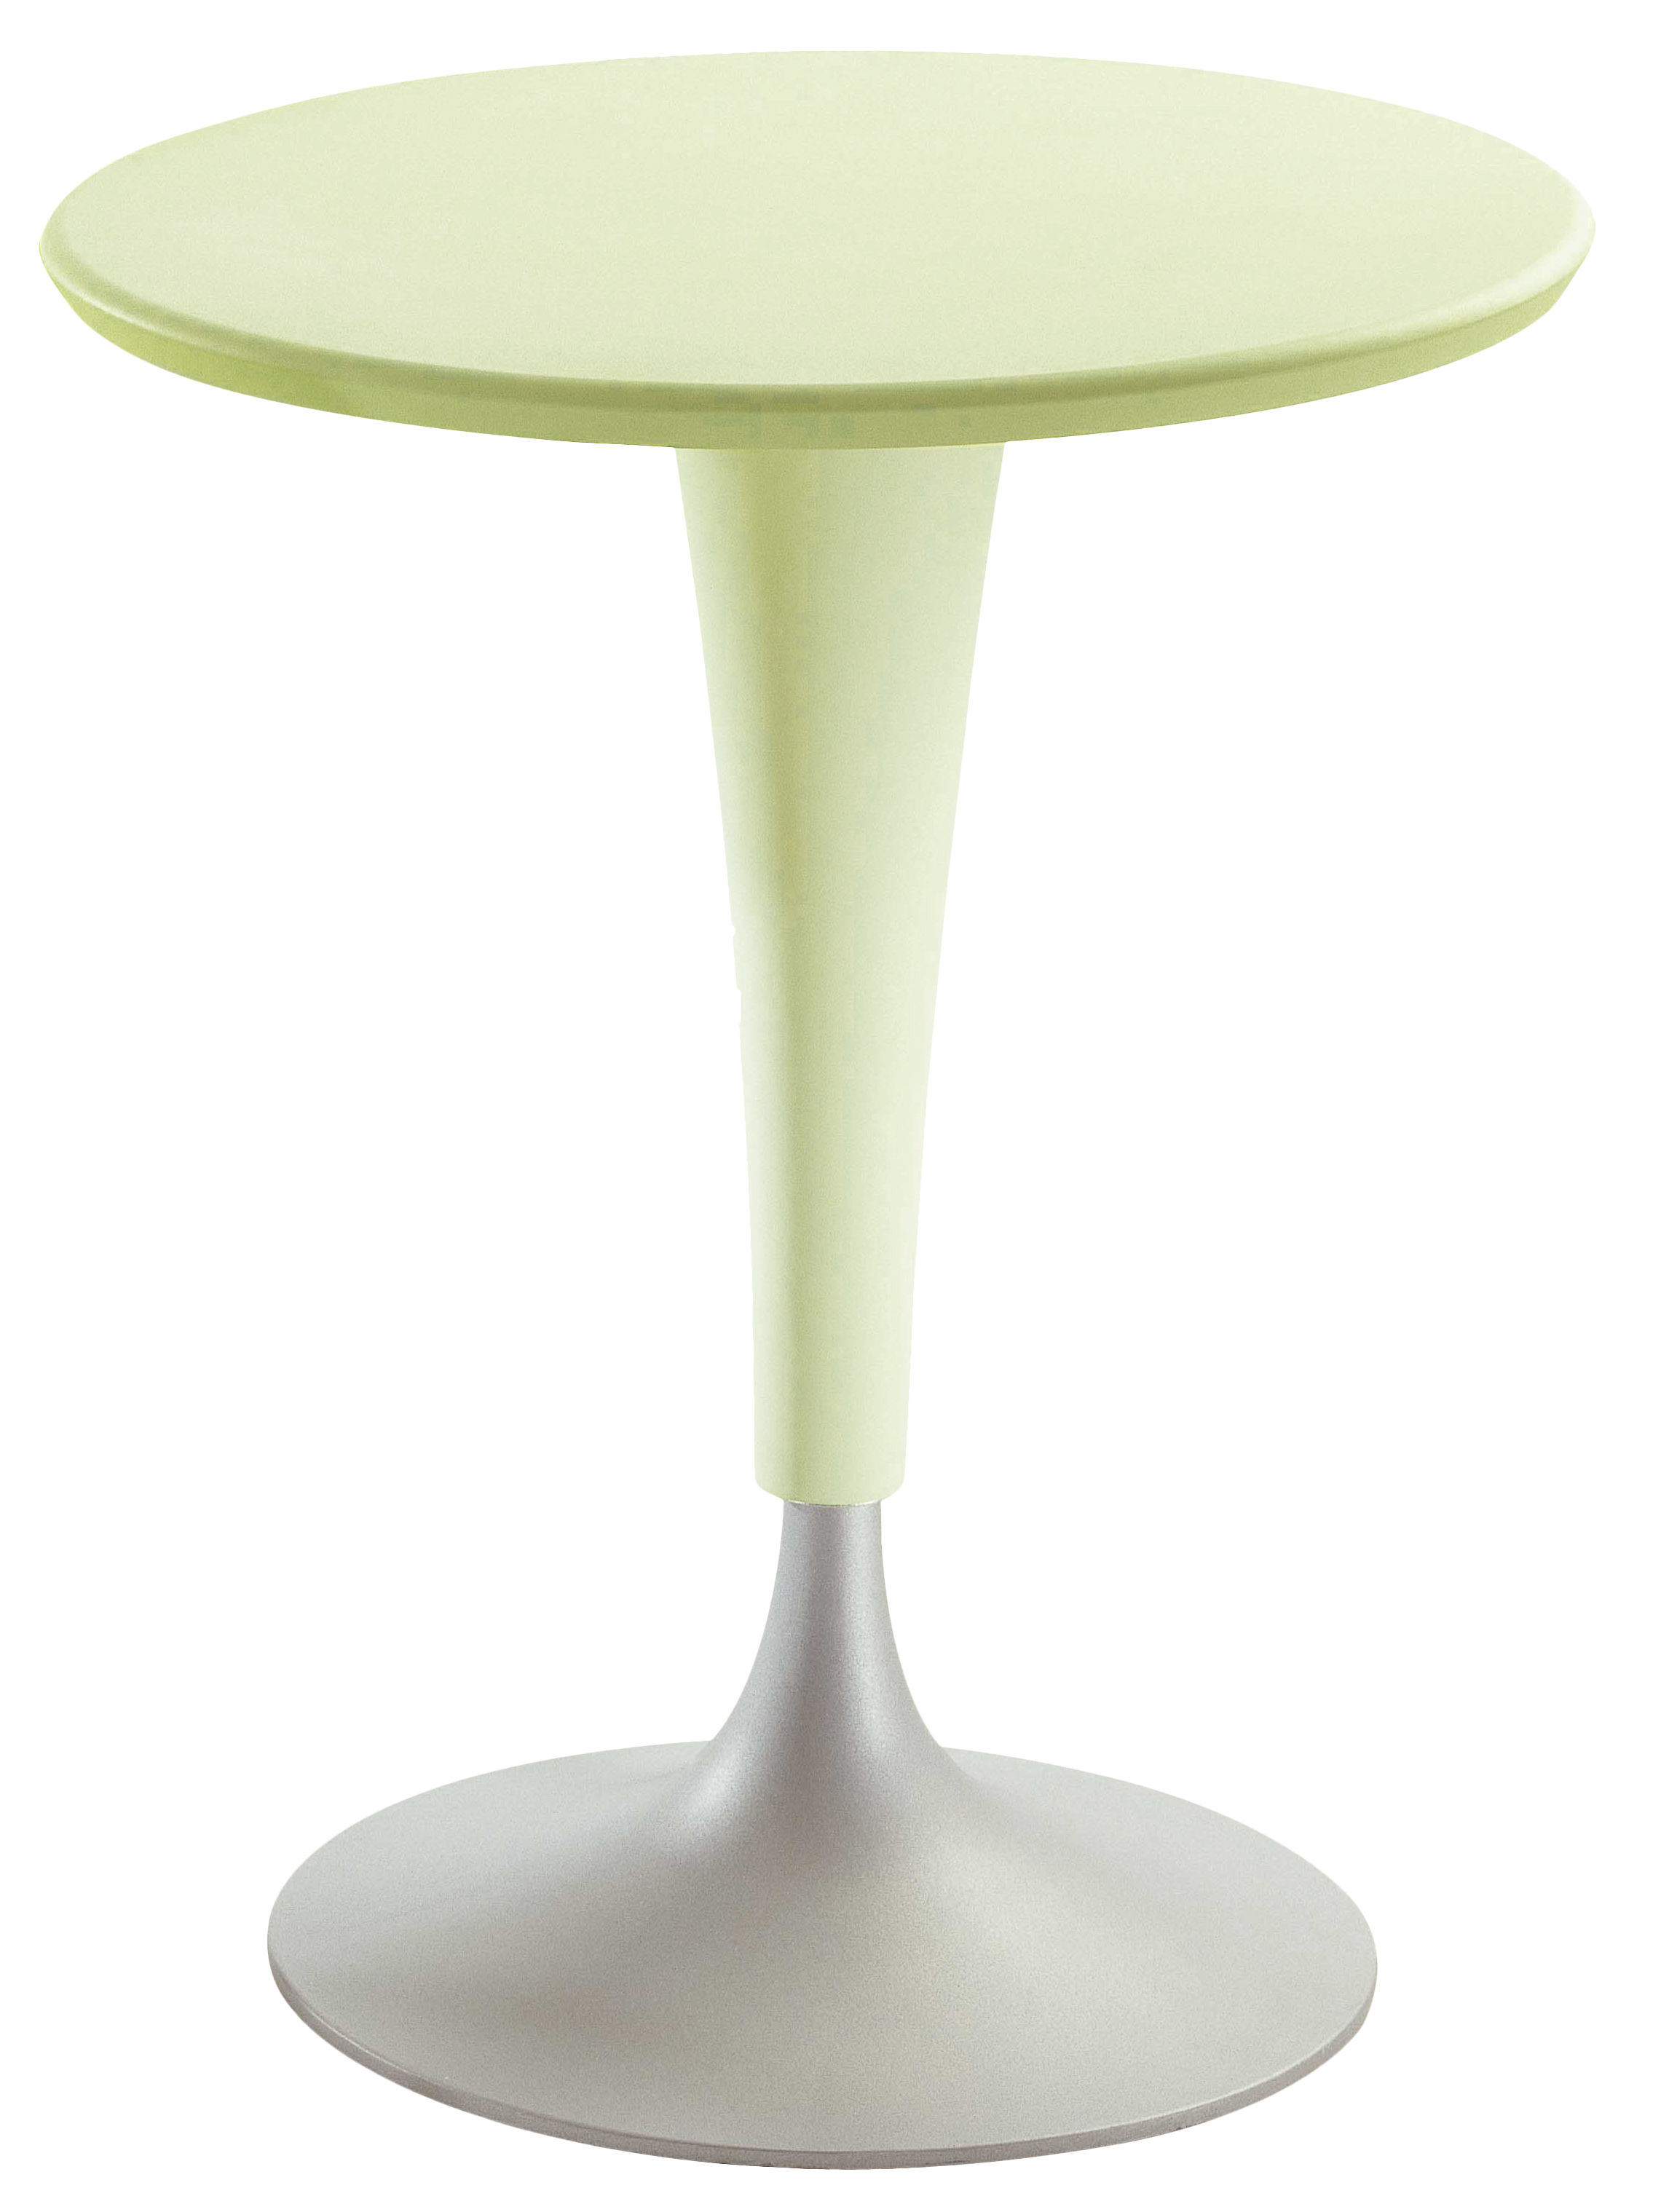 Table ronde Dr. Na Kartell - Vert jaune clair - h 73 x Ø 60 | Made ...